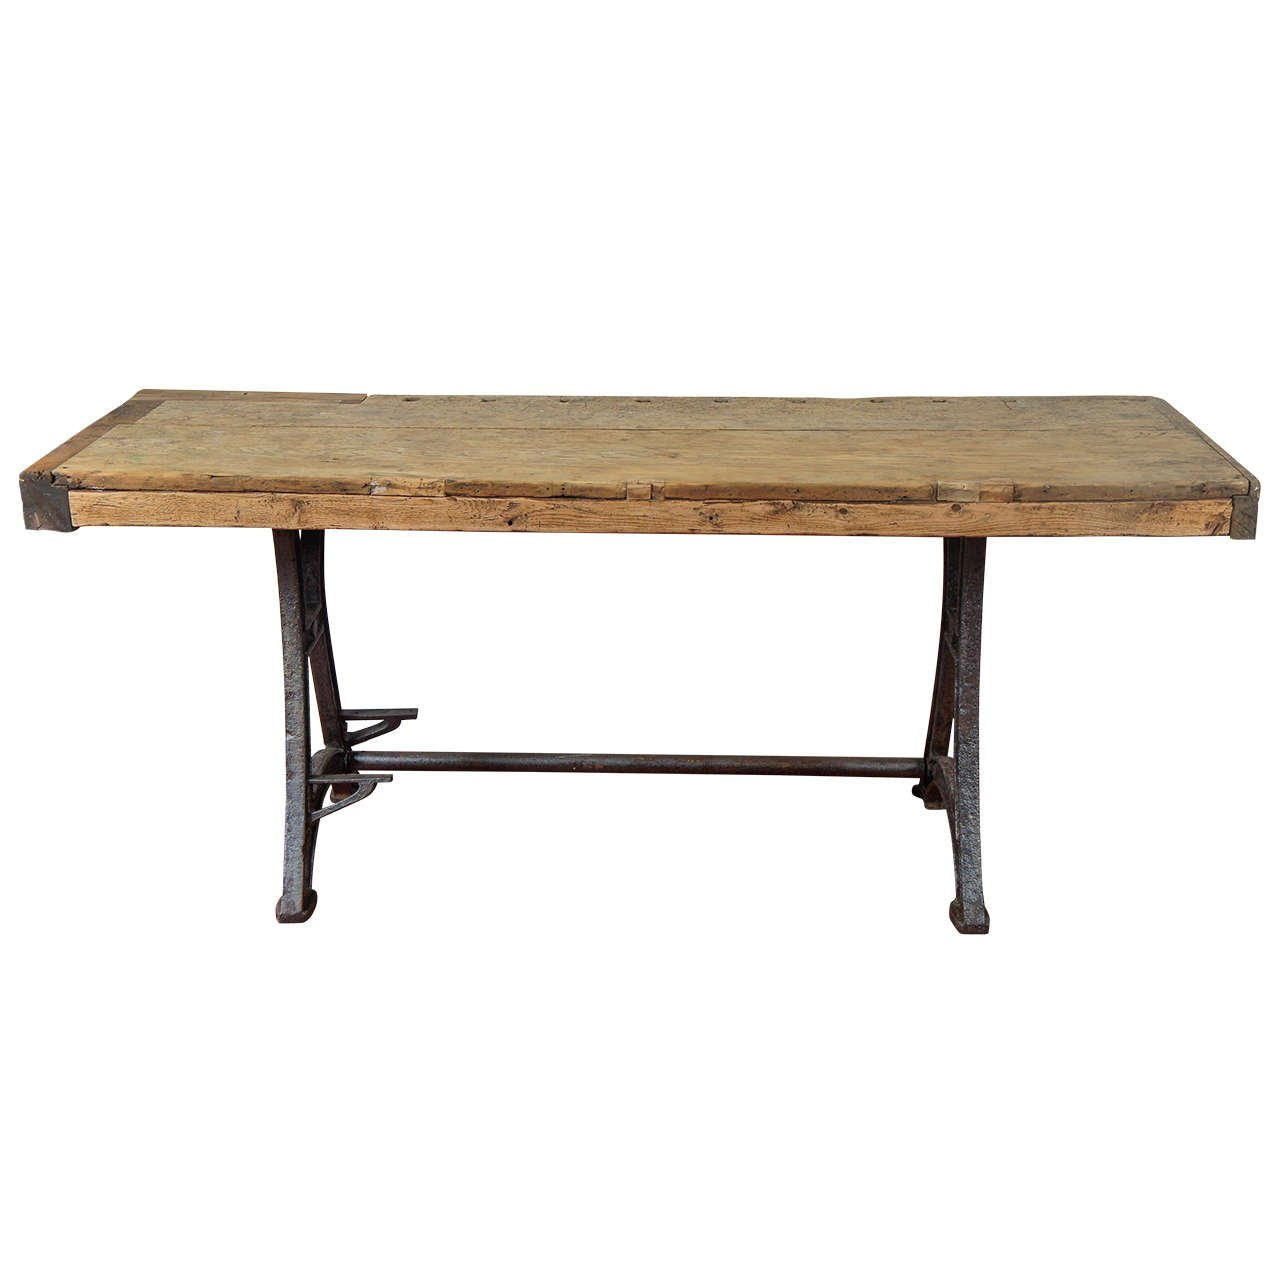 Adjustable Metal Workbench Frame | Counter Height Work Tables | Metal Workbench